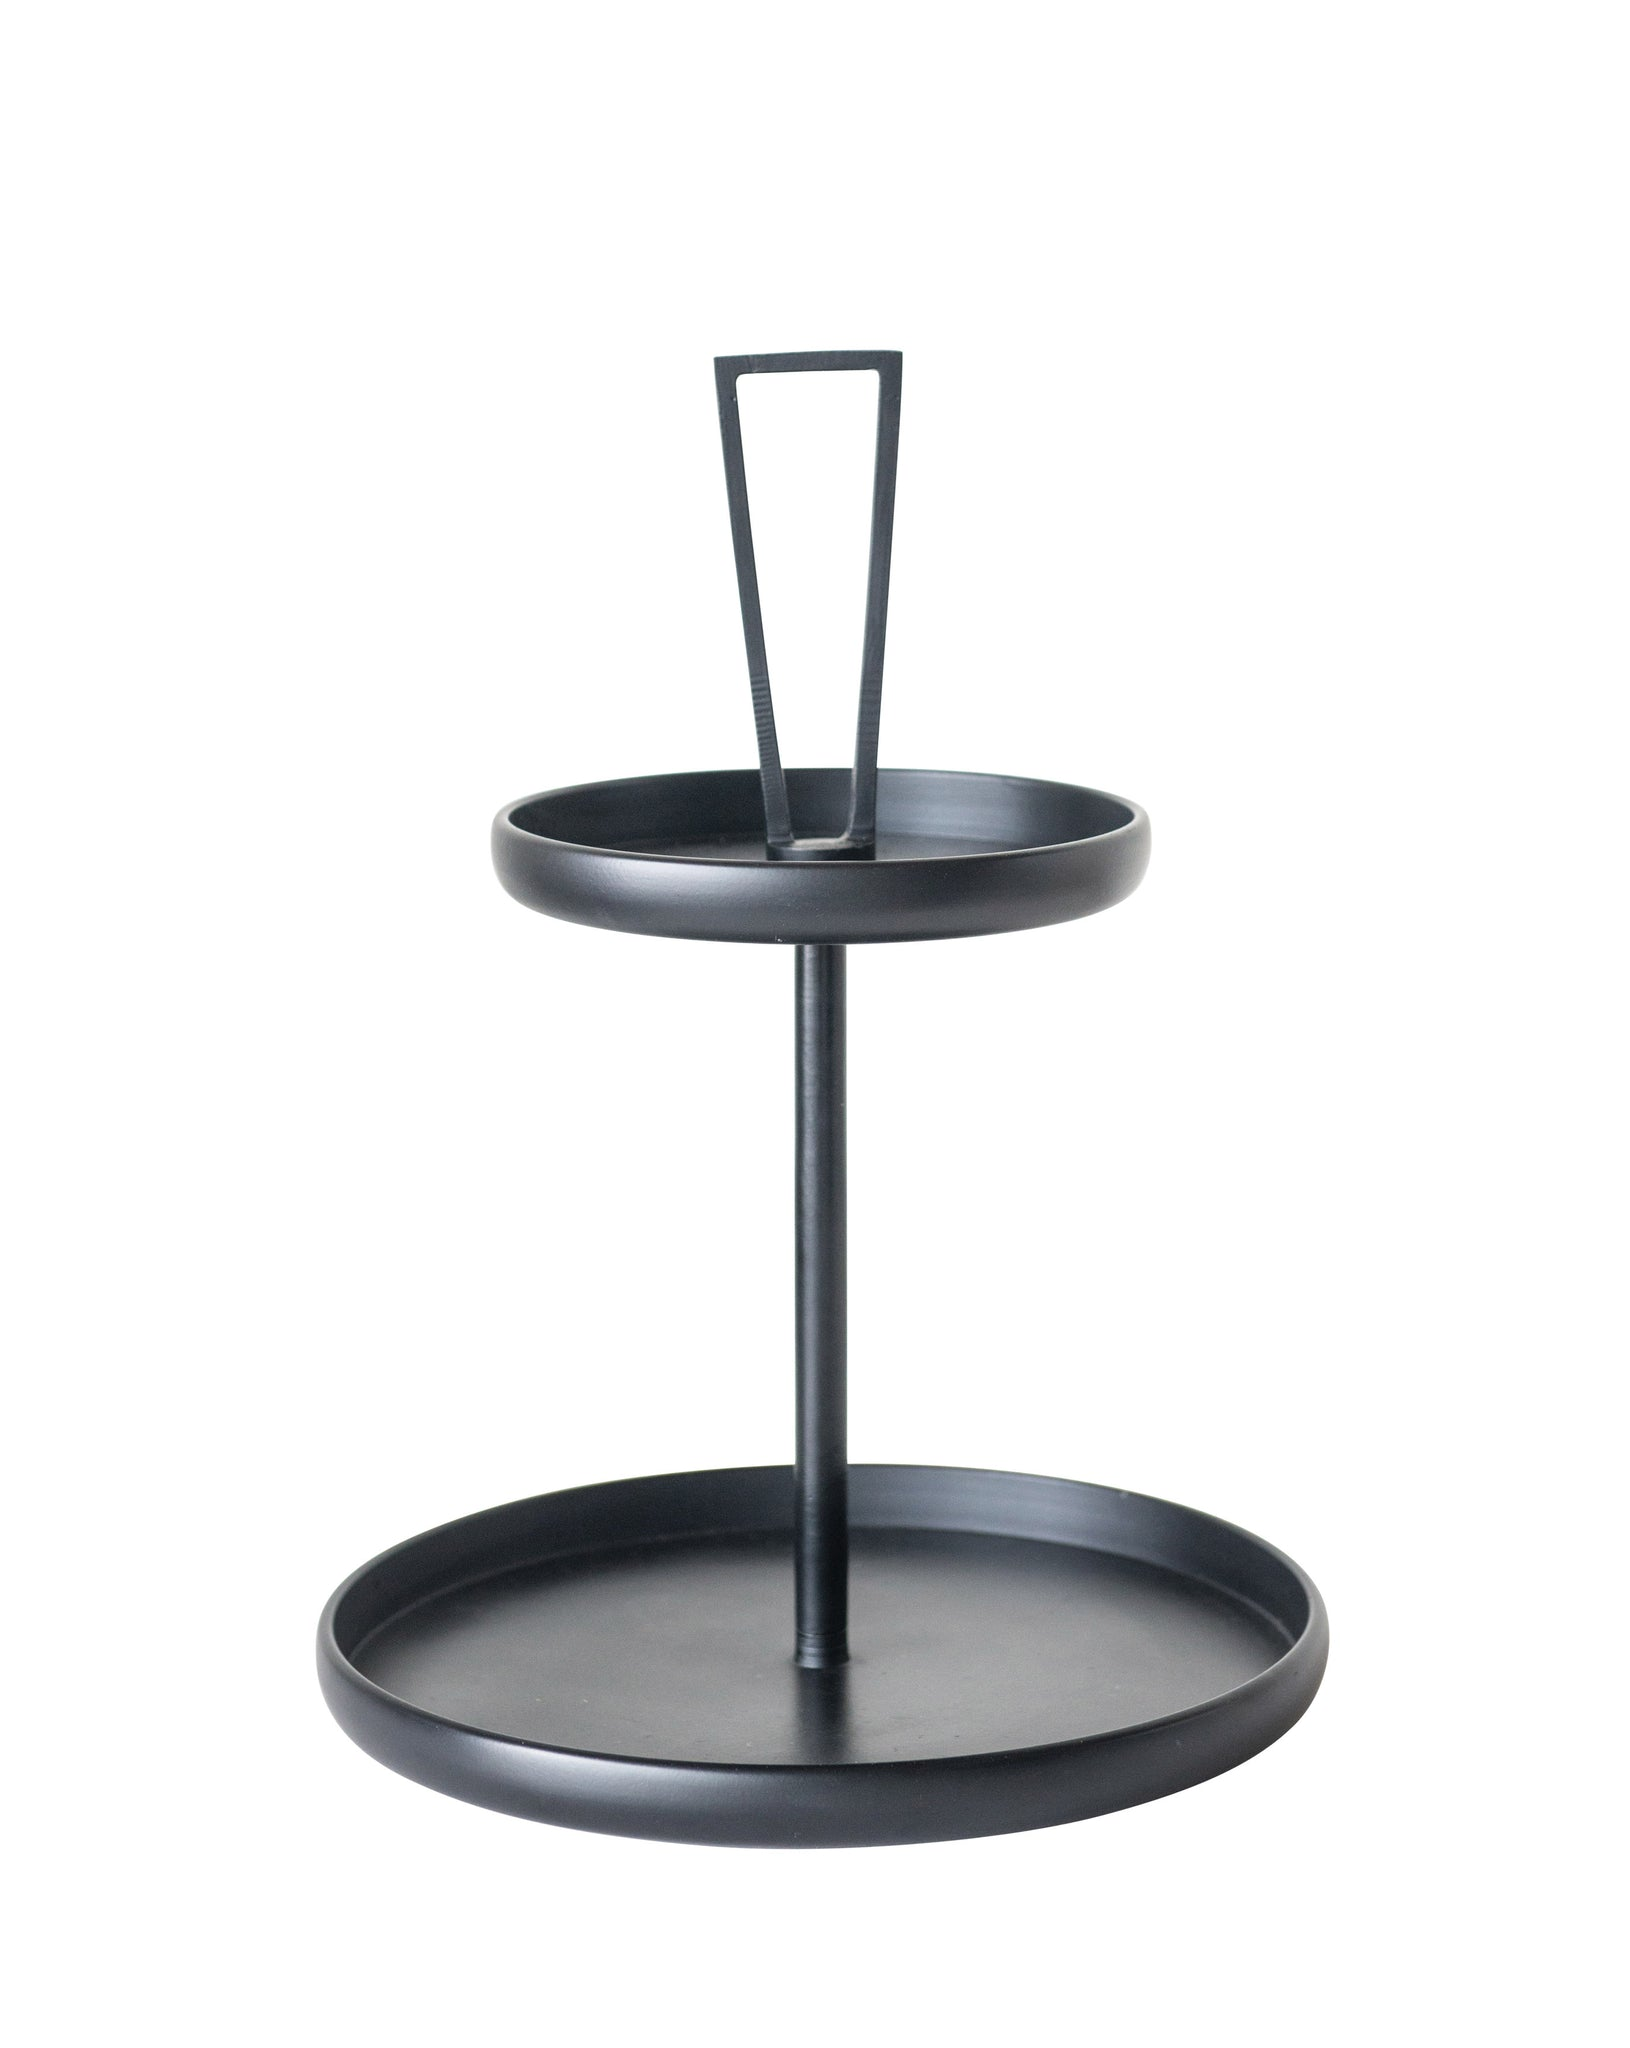 Decorative Black Metal 2-Tier Round Tray